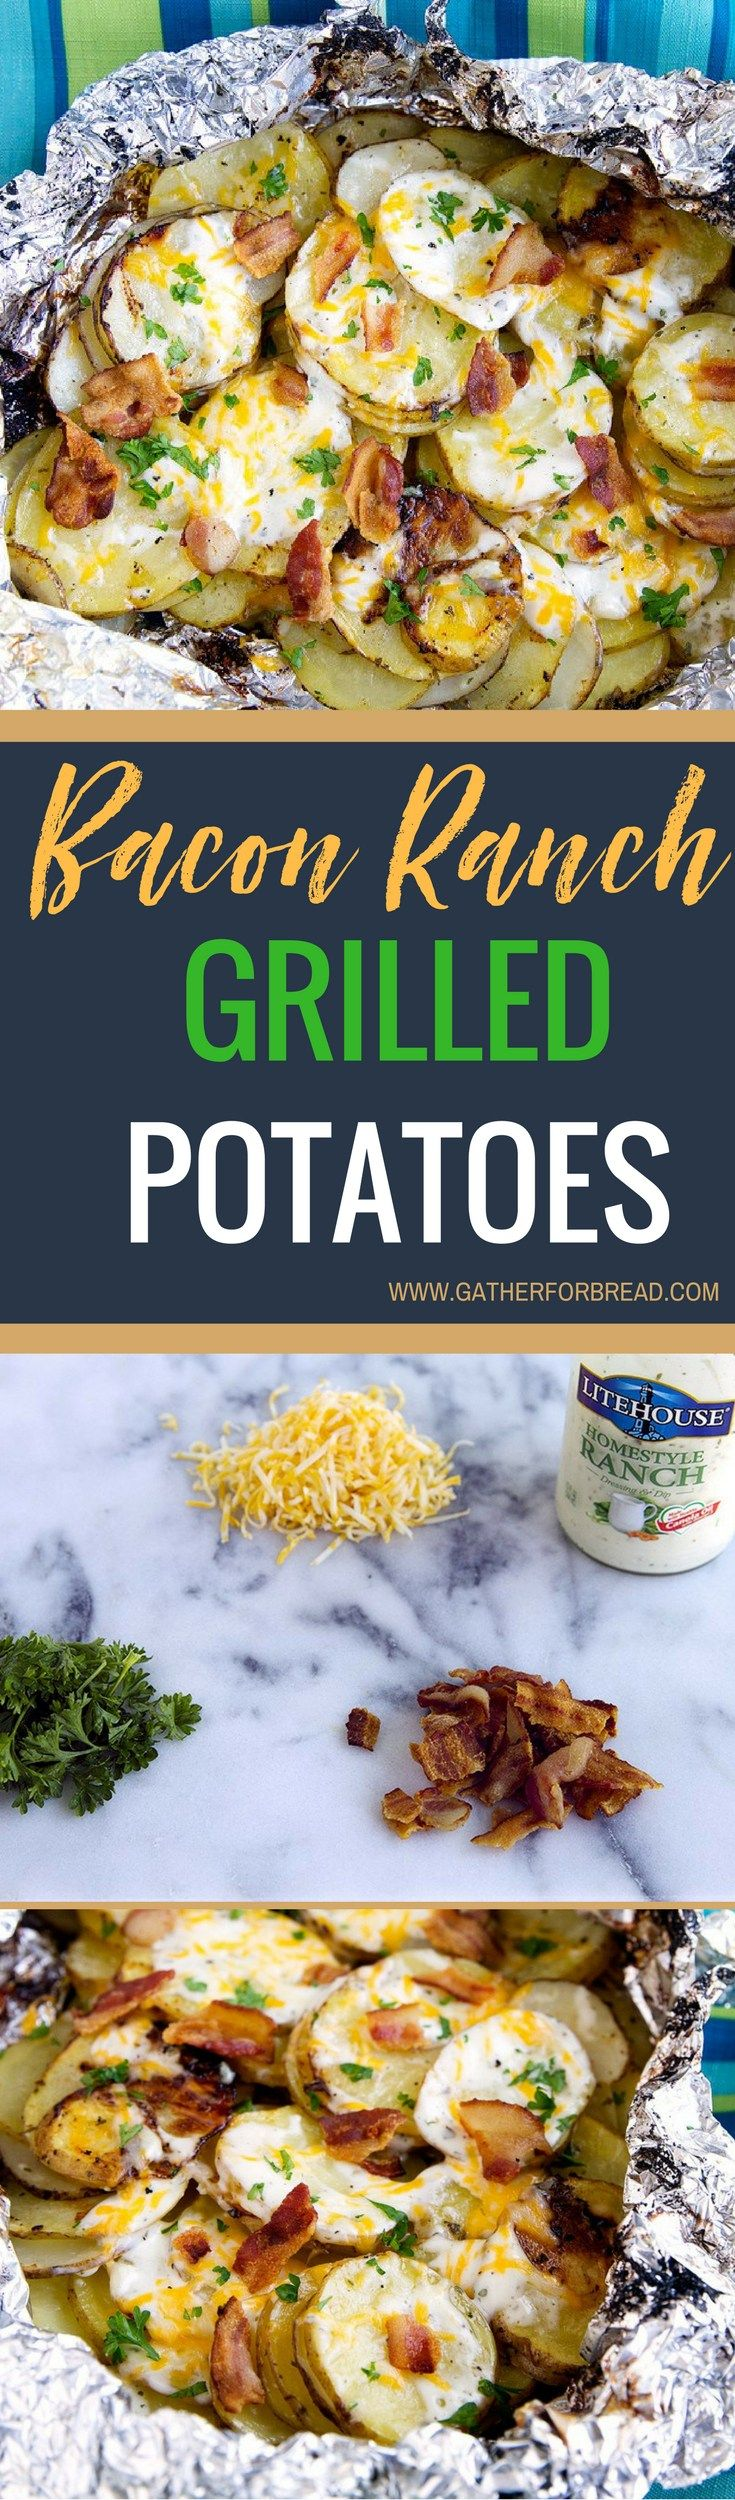 Bacon Ranch Grilled Potatoes - Sliced potatoes flavored with real Ranch dressing, bacon and cheese for an ultimate summer grilled side dish. Everyone will want to come to your place for dinner with th